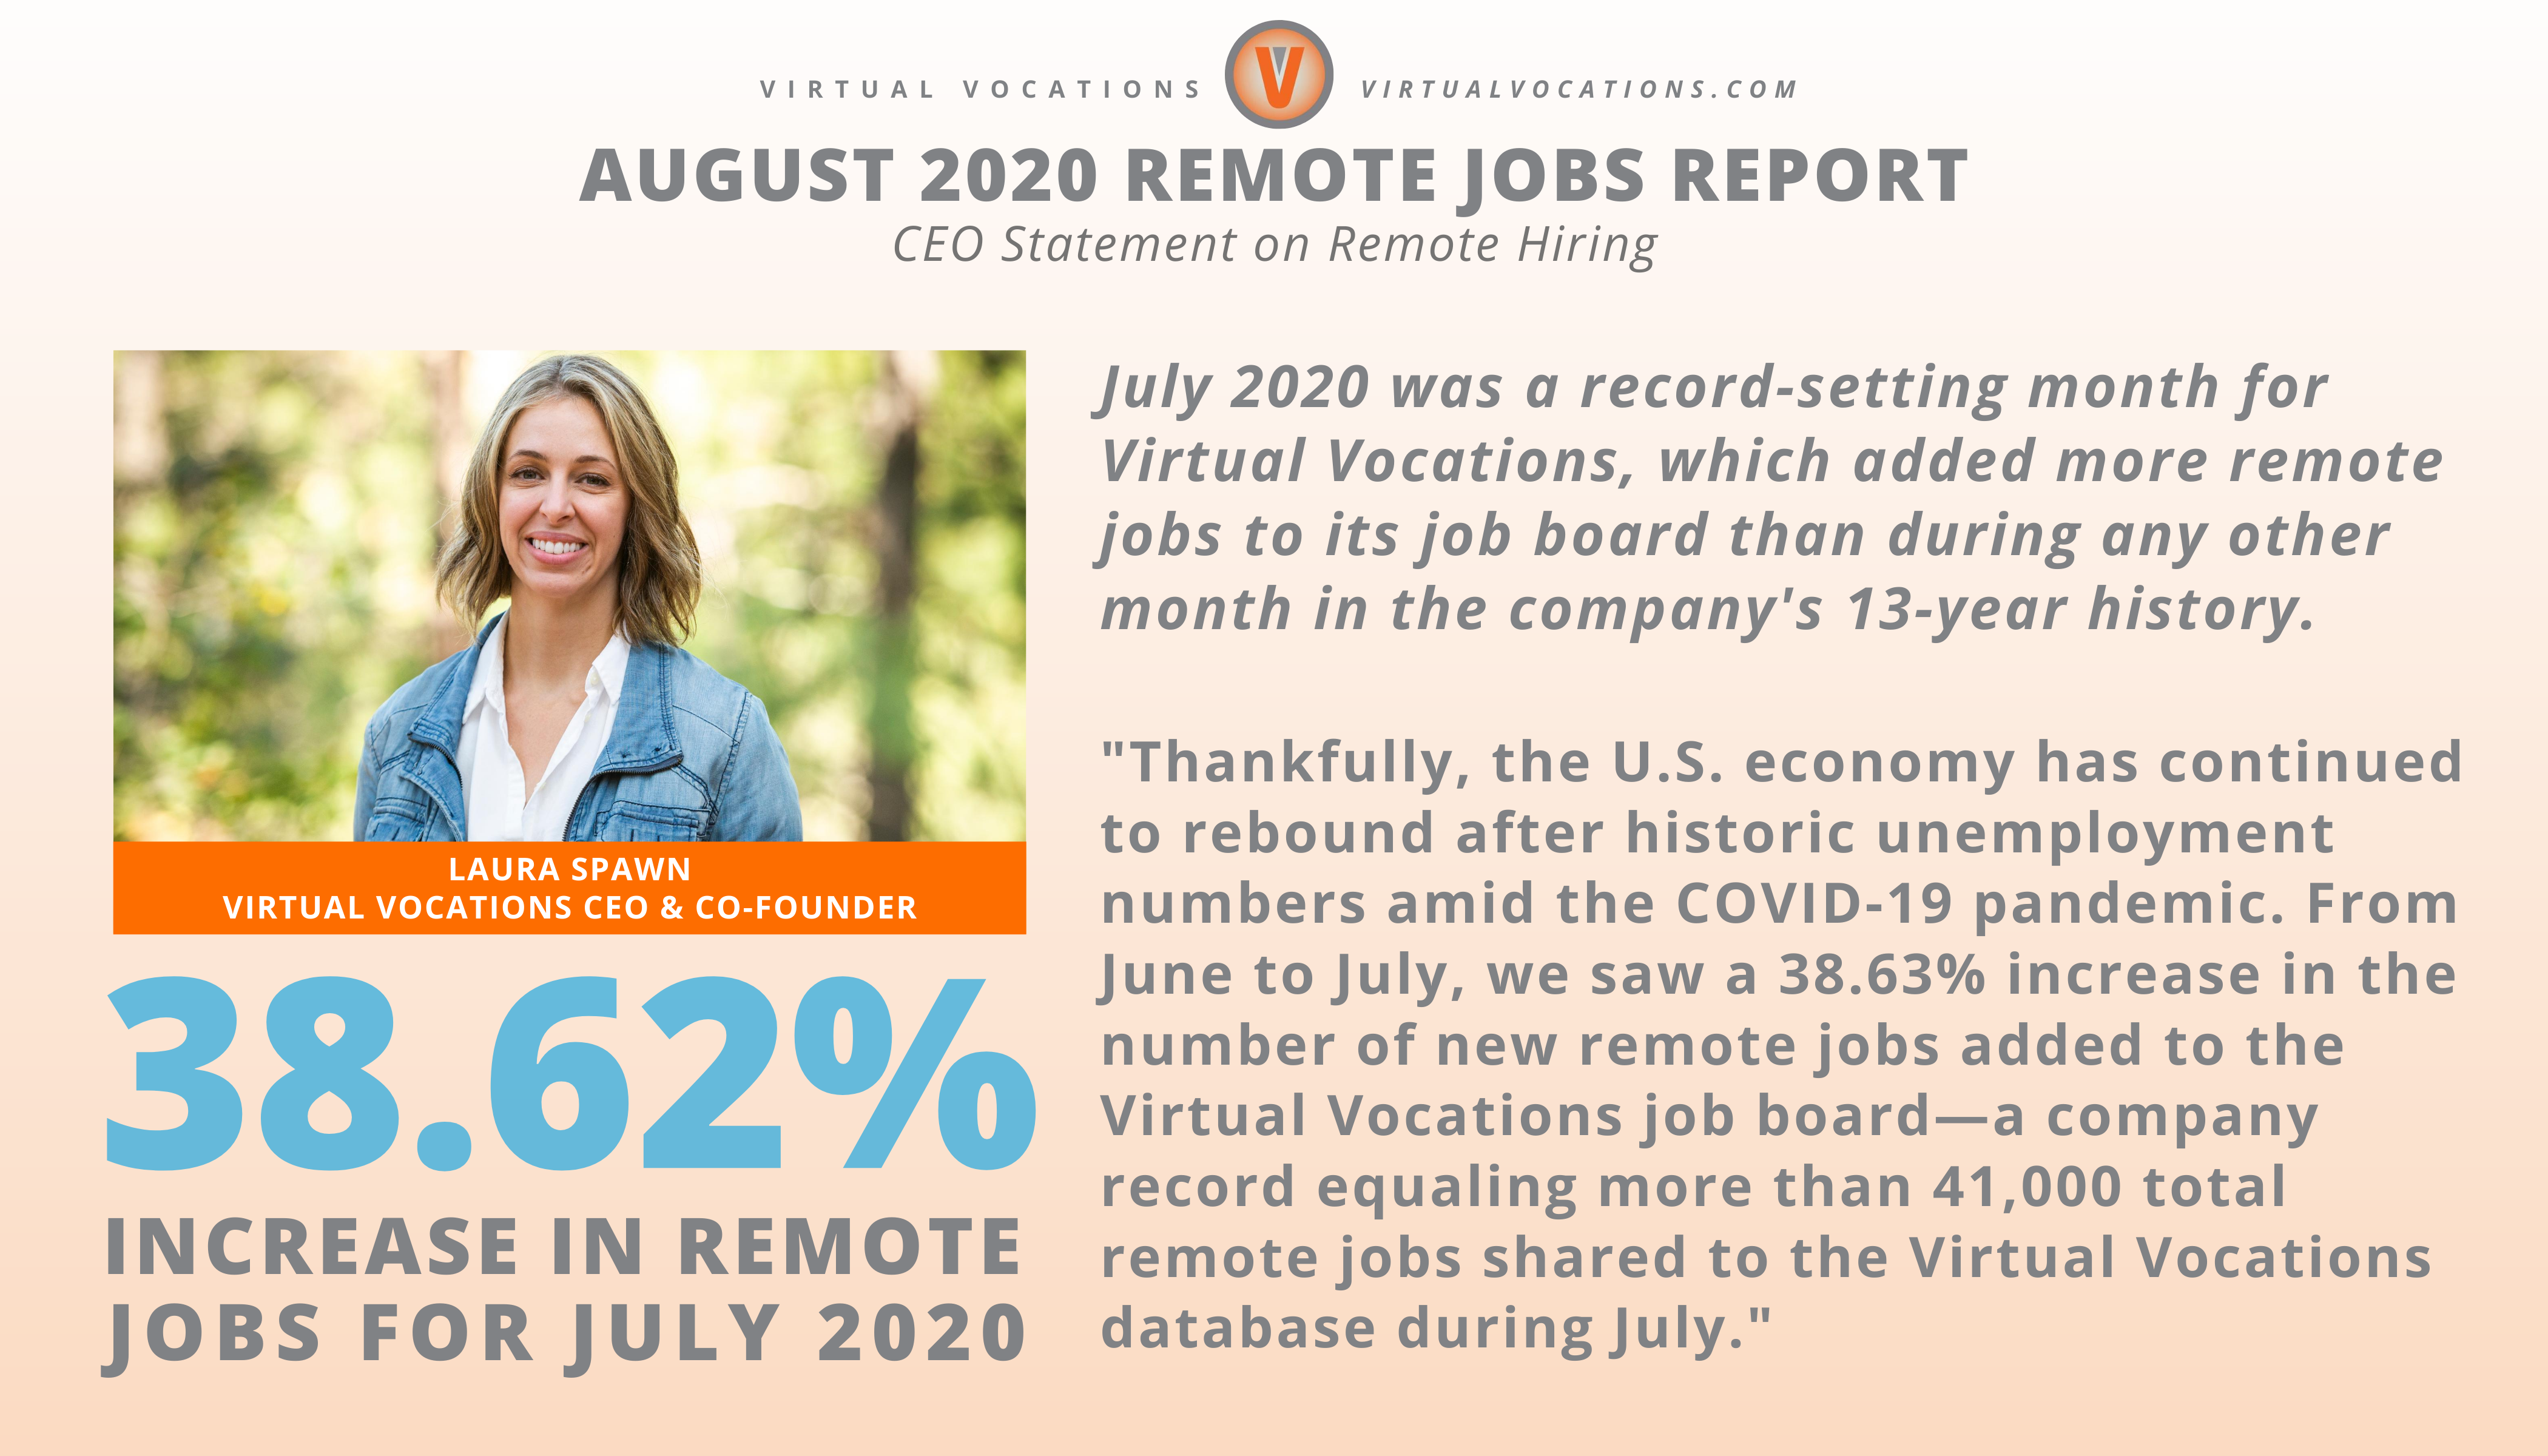 August 2020 Remote Jobs Report - Virtual Vocations - Laura Spawn Statement on Remote Hiring During July 2020